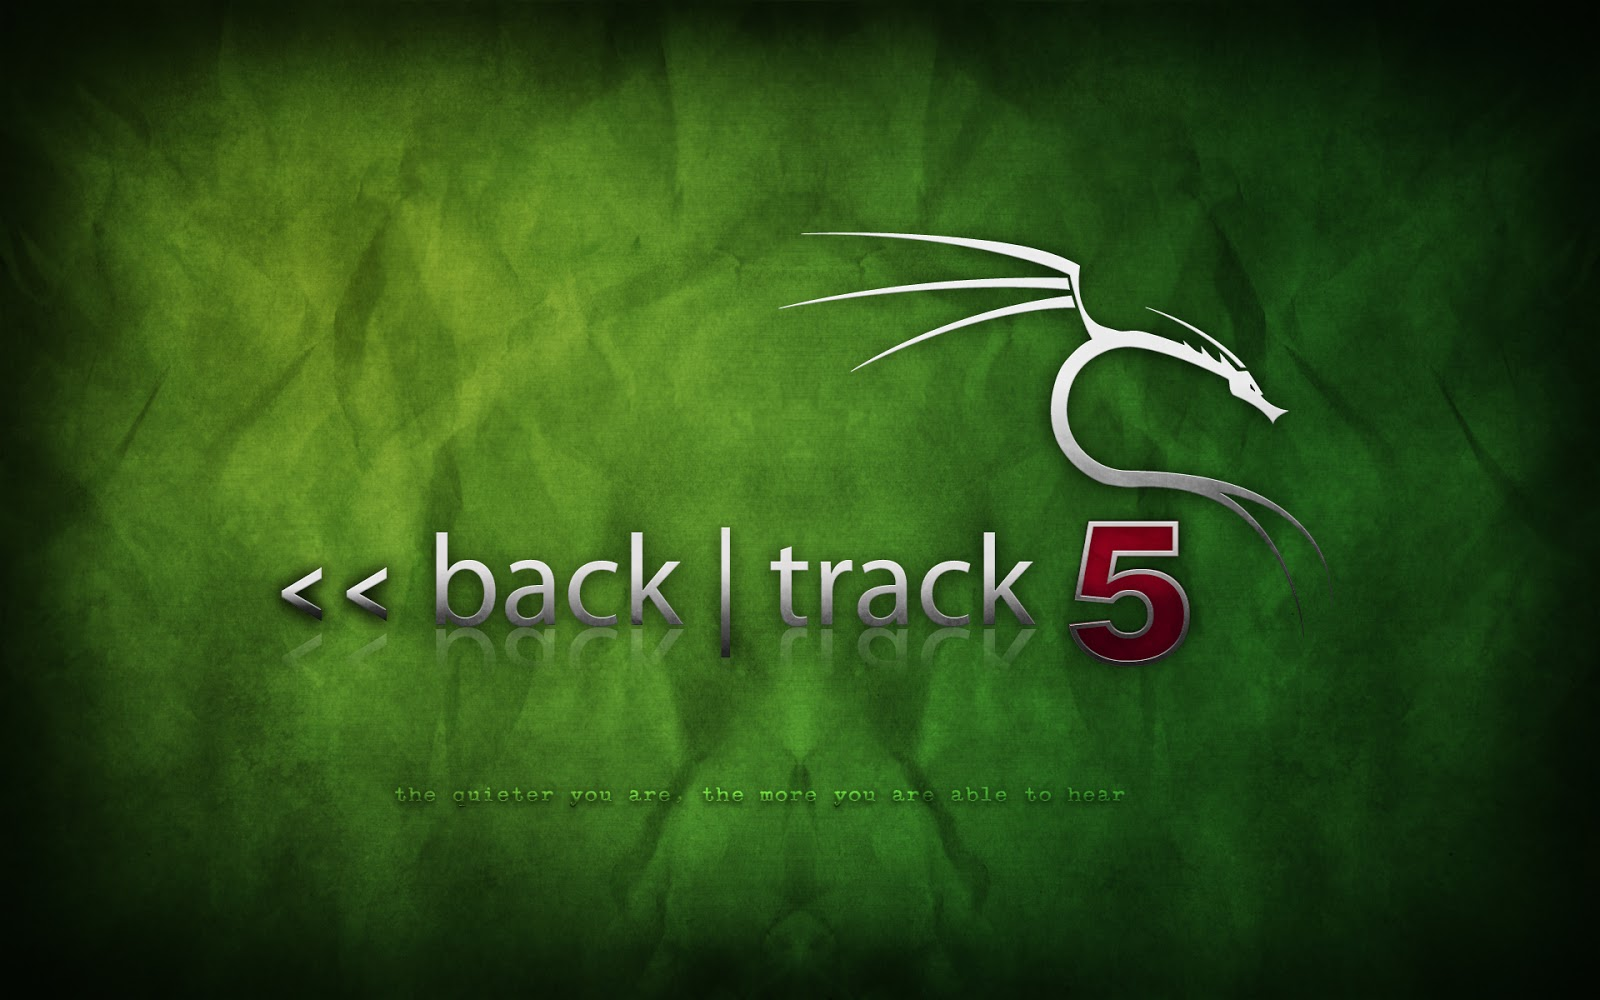 telecharger backtrack 5 pour windows 7